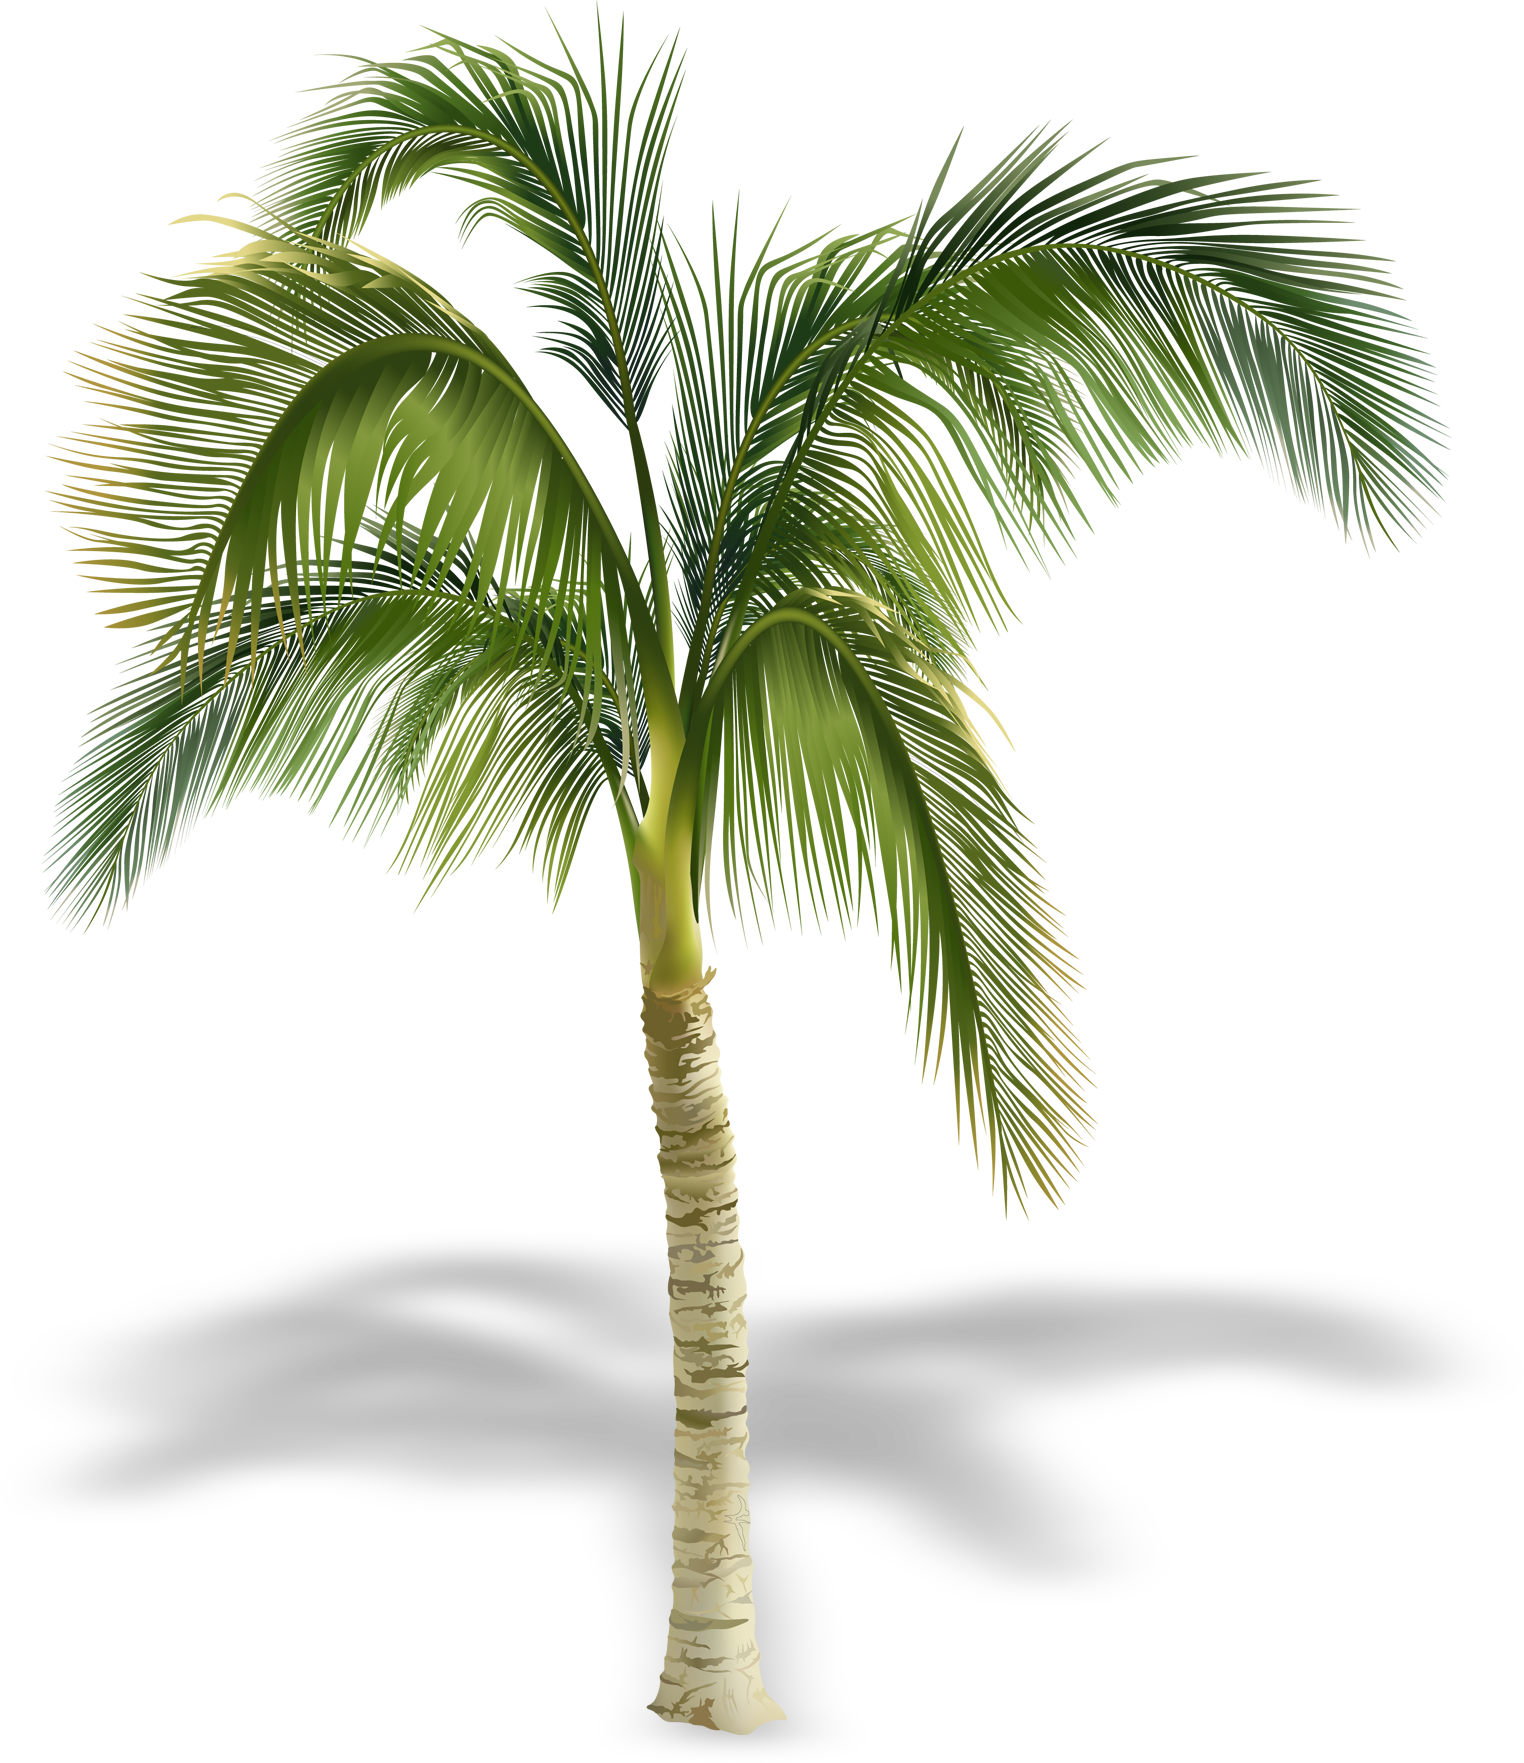 Palm tree shadow png. Arecaceae stock photography royalty